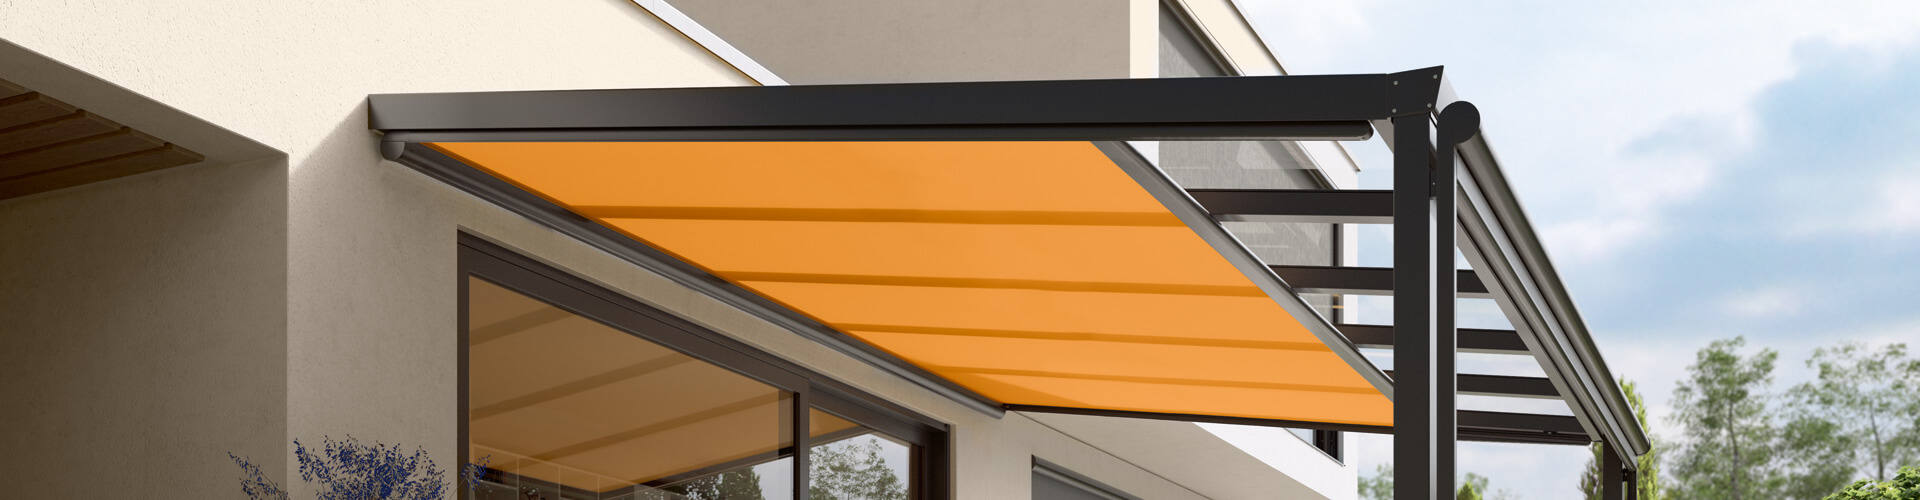 Markilux Awnings - Hero Image